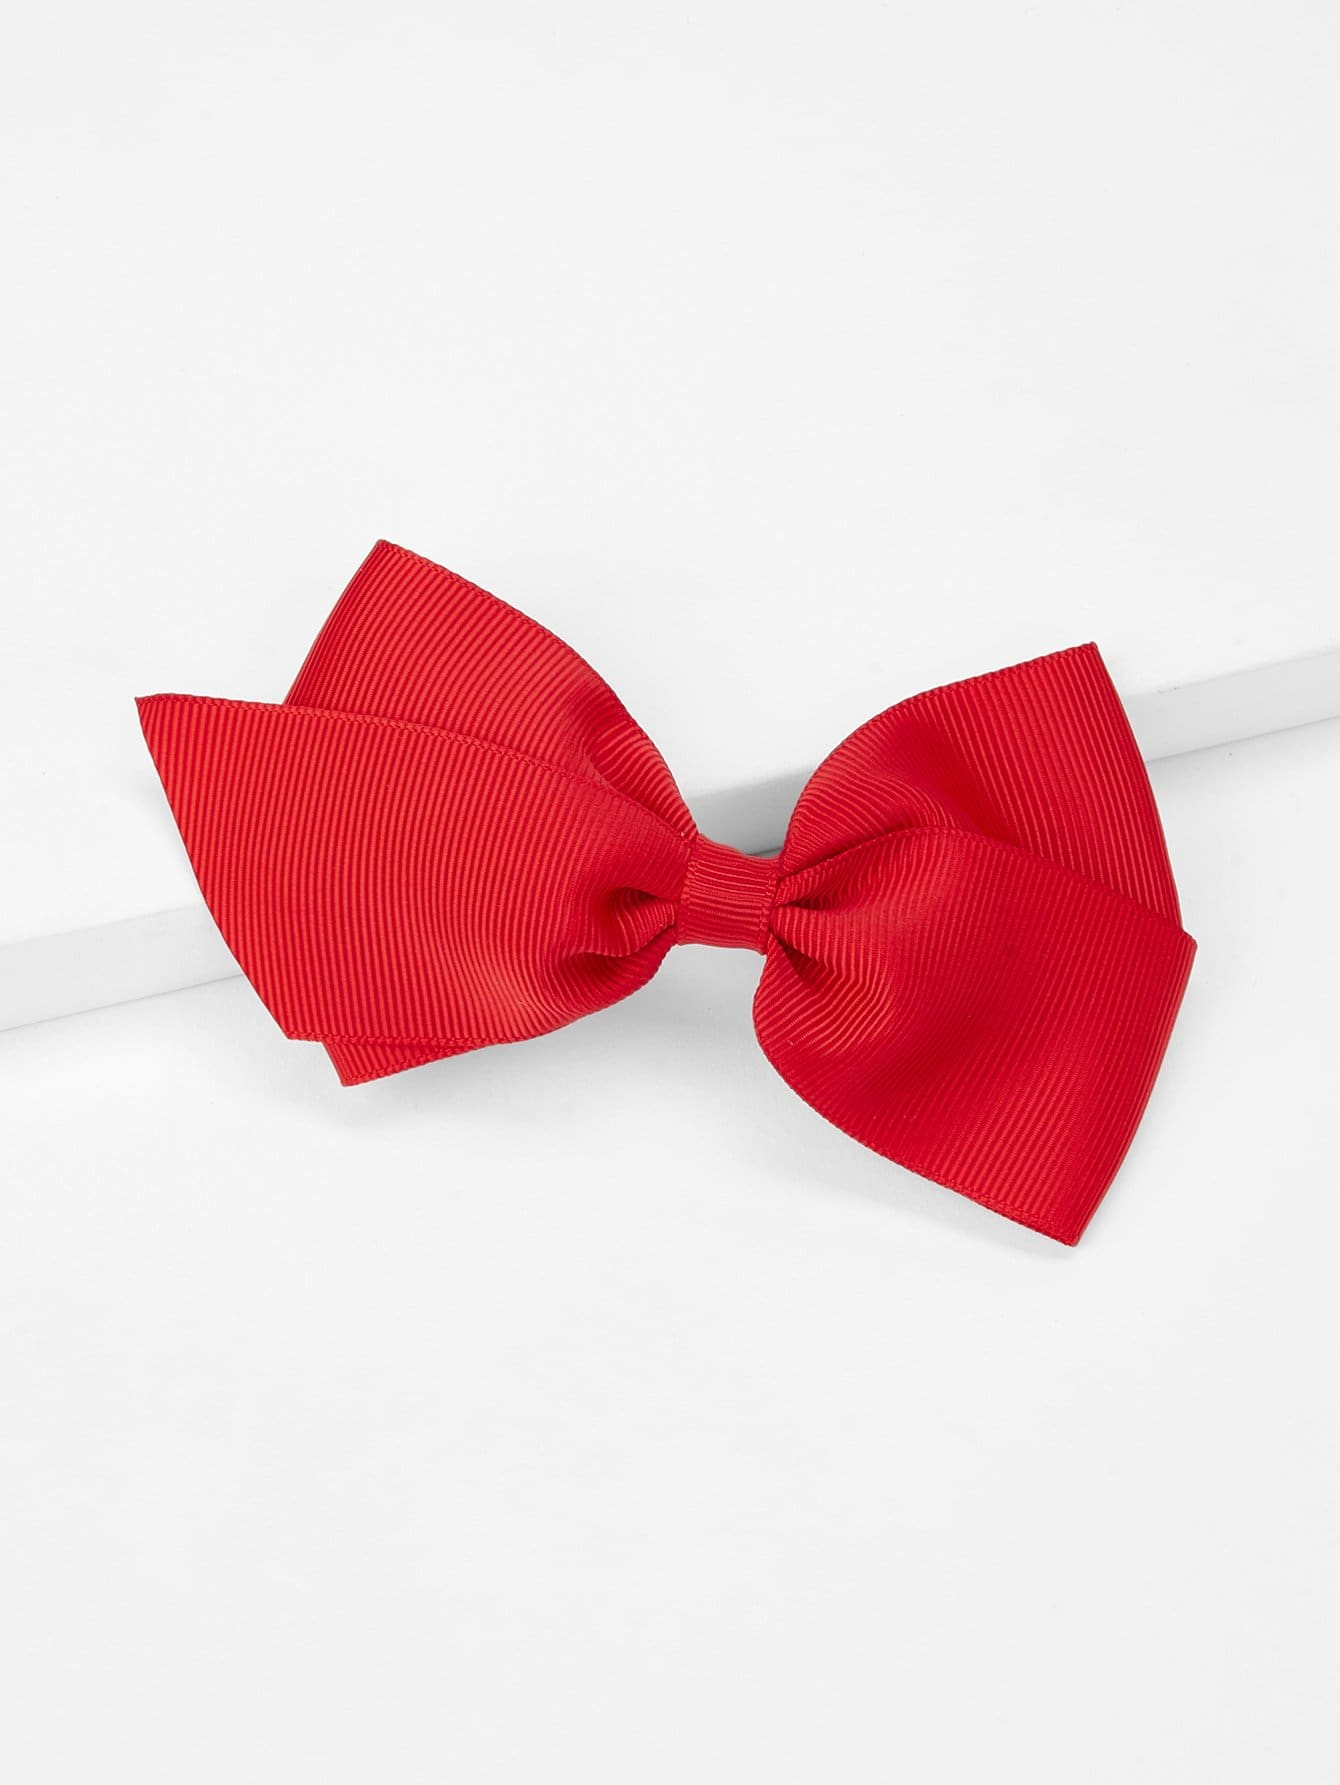 Bow Design Kids Hair Clip 40pcs lot 3 inch high quality grosgrain ribbon hair bow tie with without clip kids hairpin headwear bowknot accessories hdj15